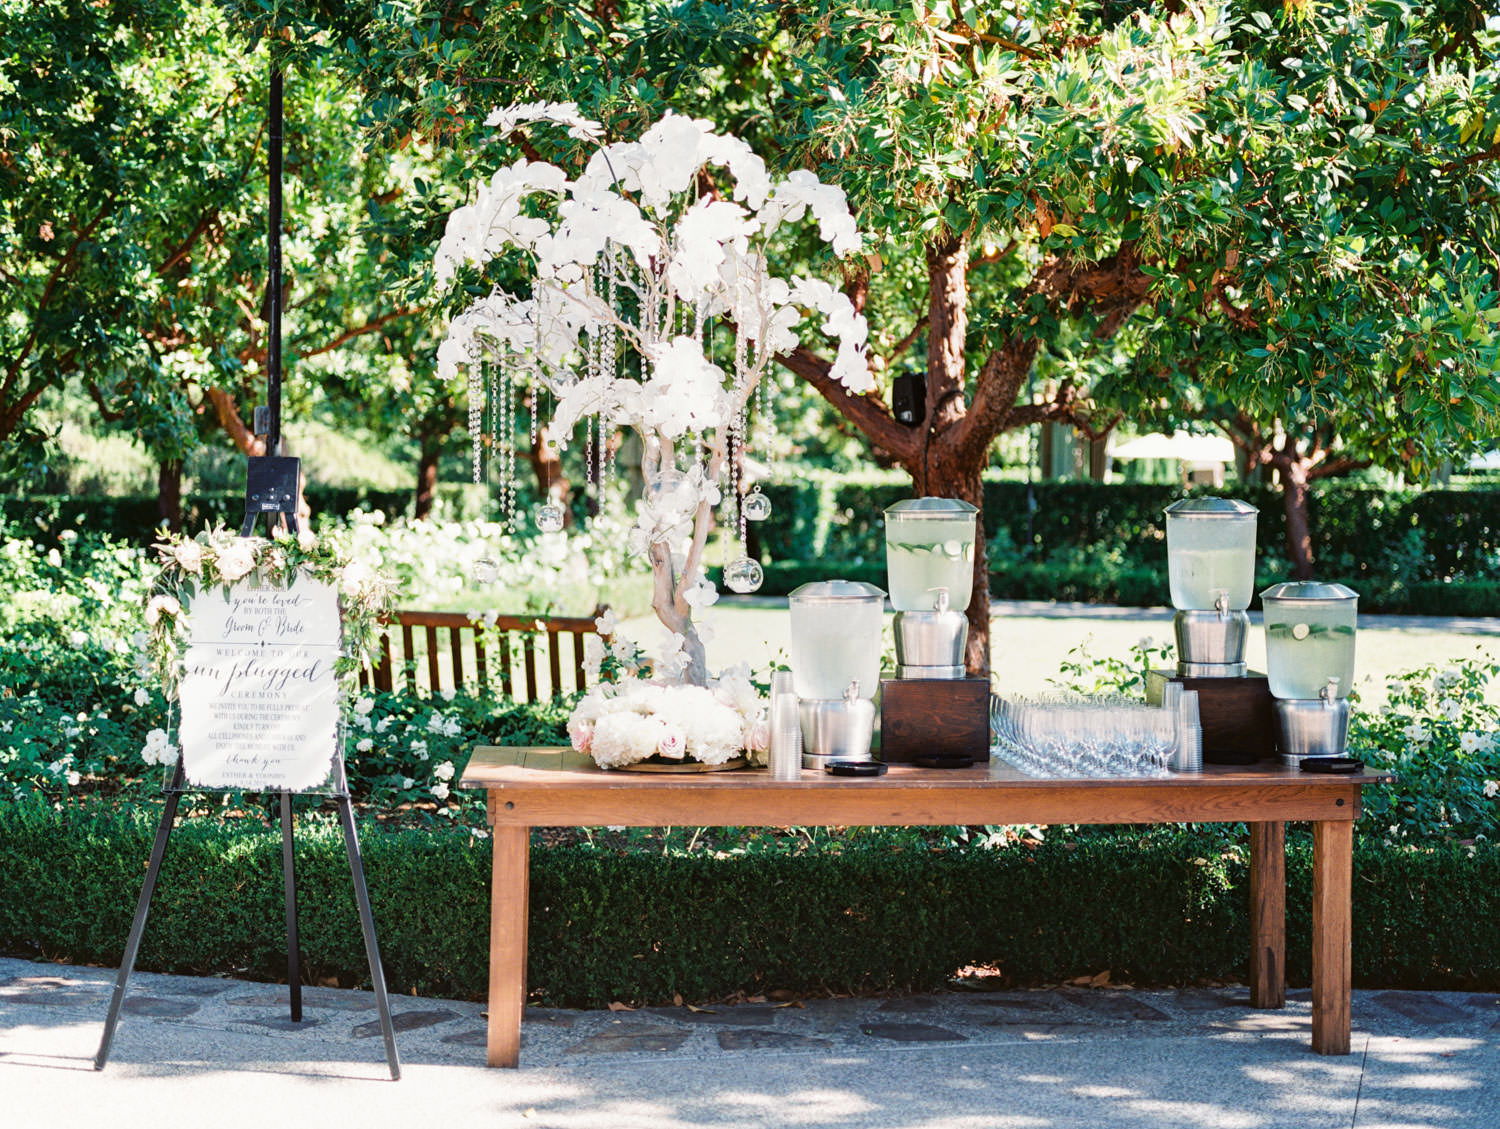 Wedding refreshment table with flavored water station and large tree covered in white orchids and an unplugged ceremony sign. Rancho Bernardo Inn Aragon lawn wedding ceremony. Film photo by Cavin Elizabeth Photography